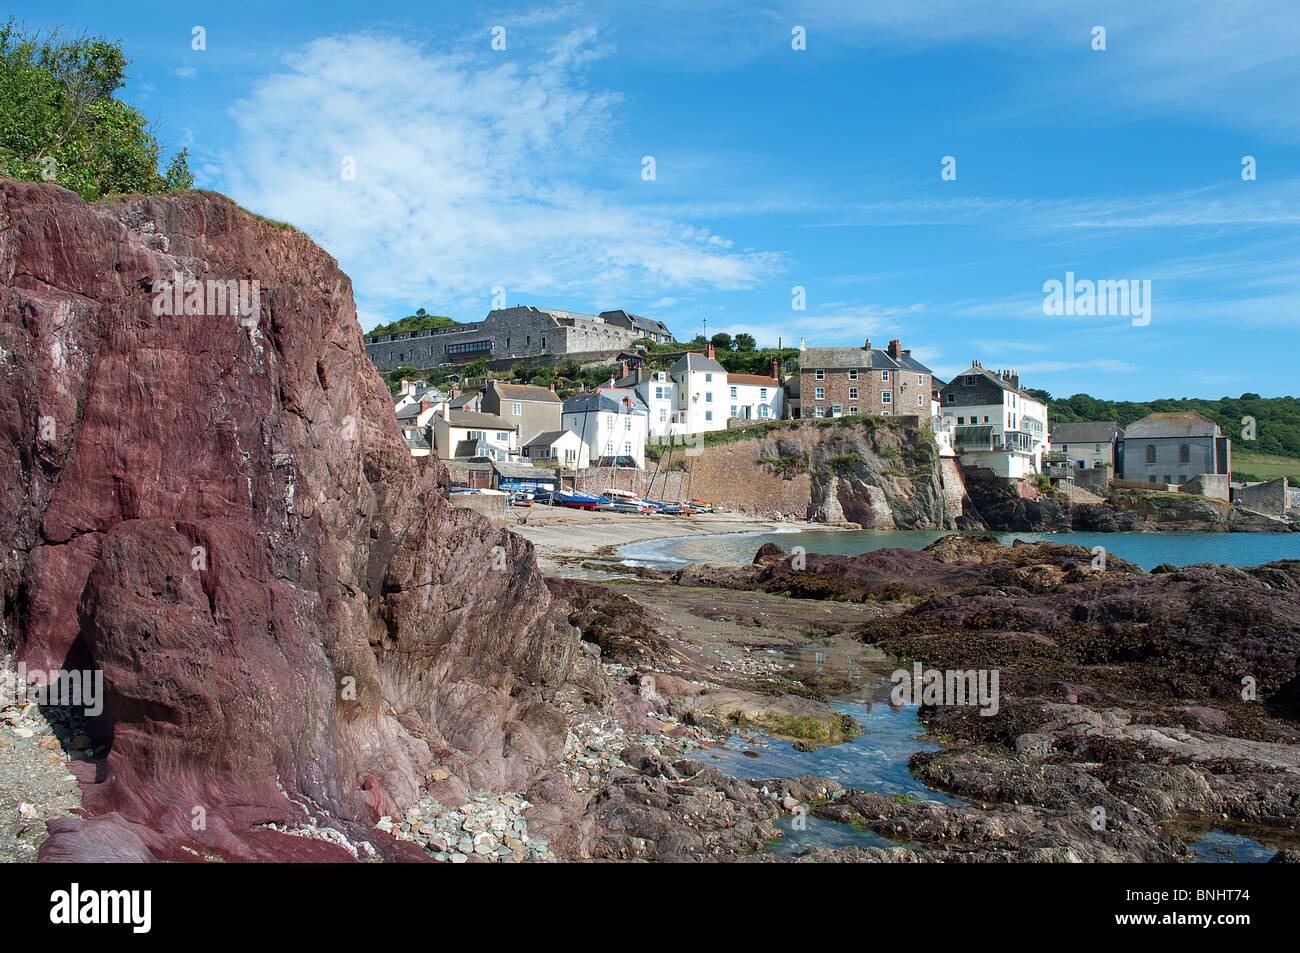 the red sandstone rock at cawsand in cornwall, uk - Stock Image